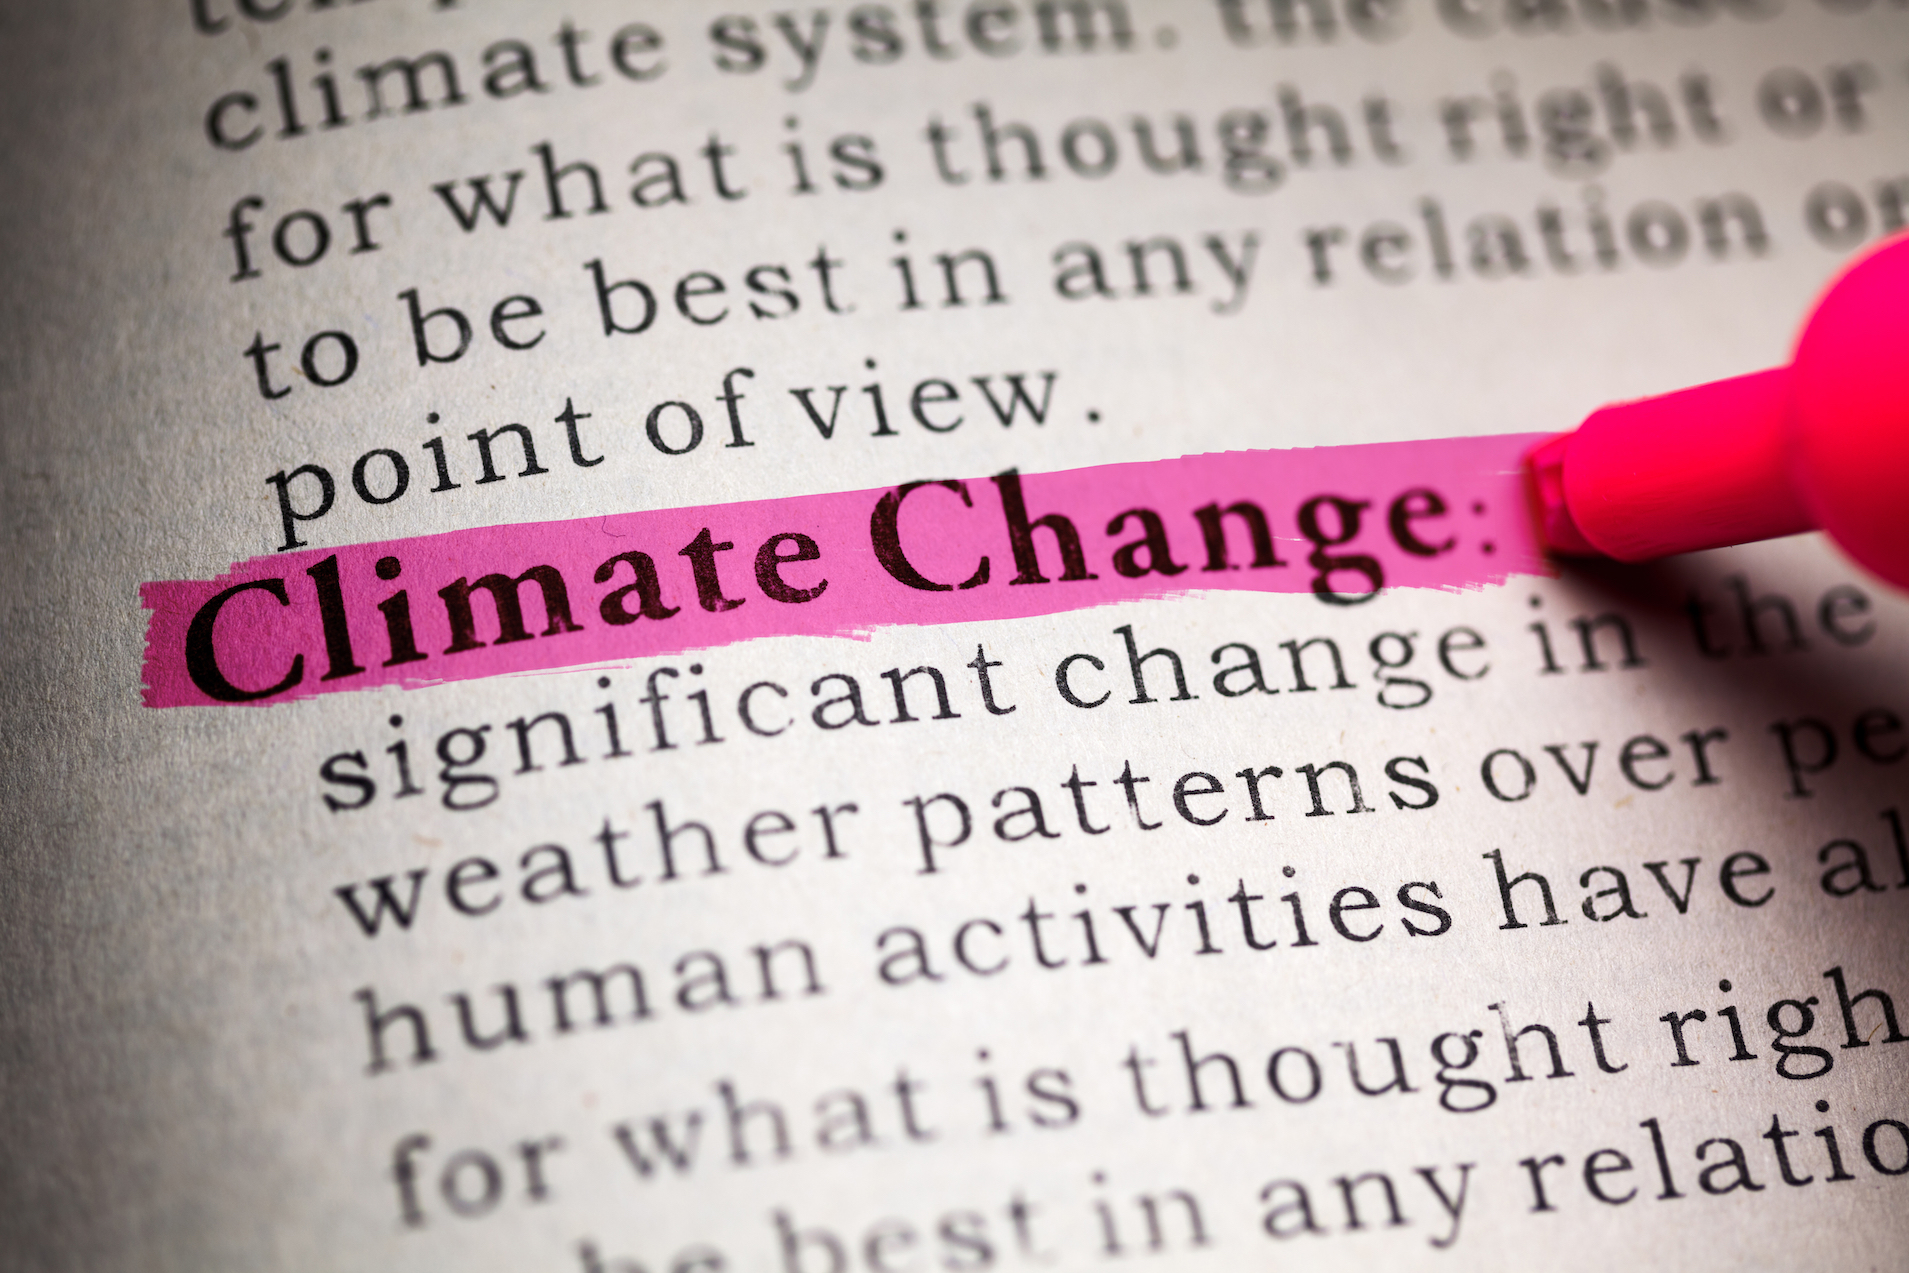 An ongoing study is providing other explanations for why some people still deny climate change and refuse to face the facts.